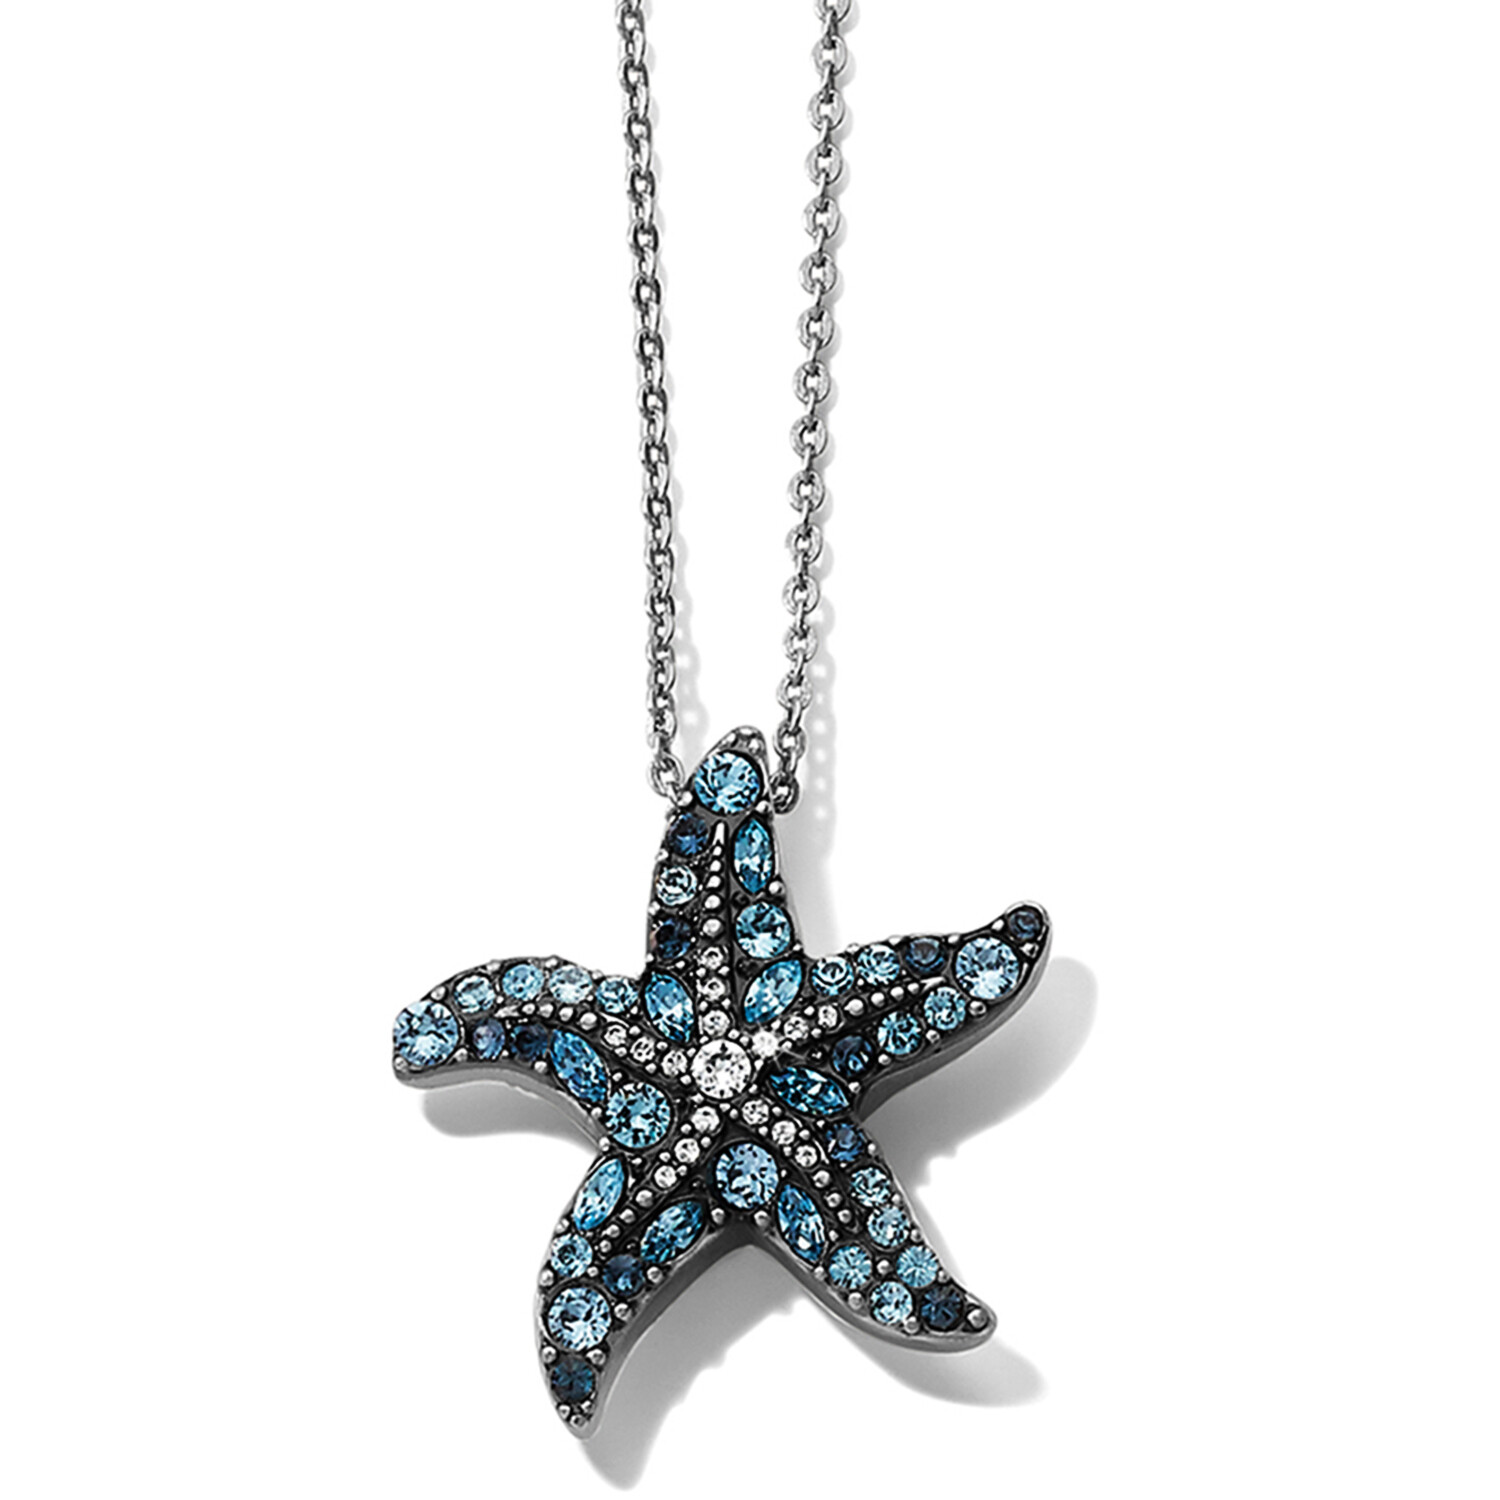 Trust Your Journey Starfish Necklace